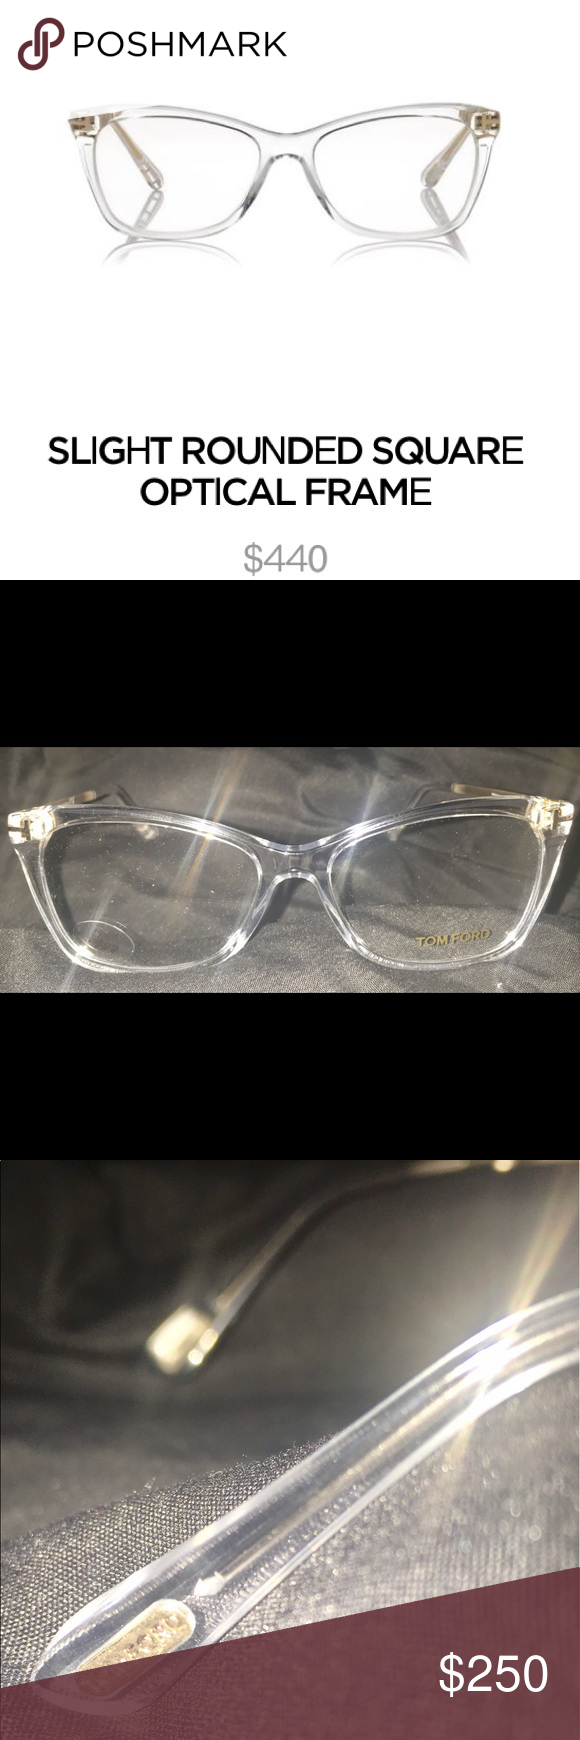 7a6ab8f36e44 TOM FORD SLIGHT ROUNDED SQUARE OPTICAL FRAME 100% AUTHENTIC SHINY CLEAR    SHINY GOLD METAL